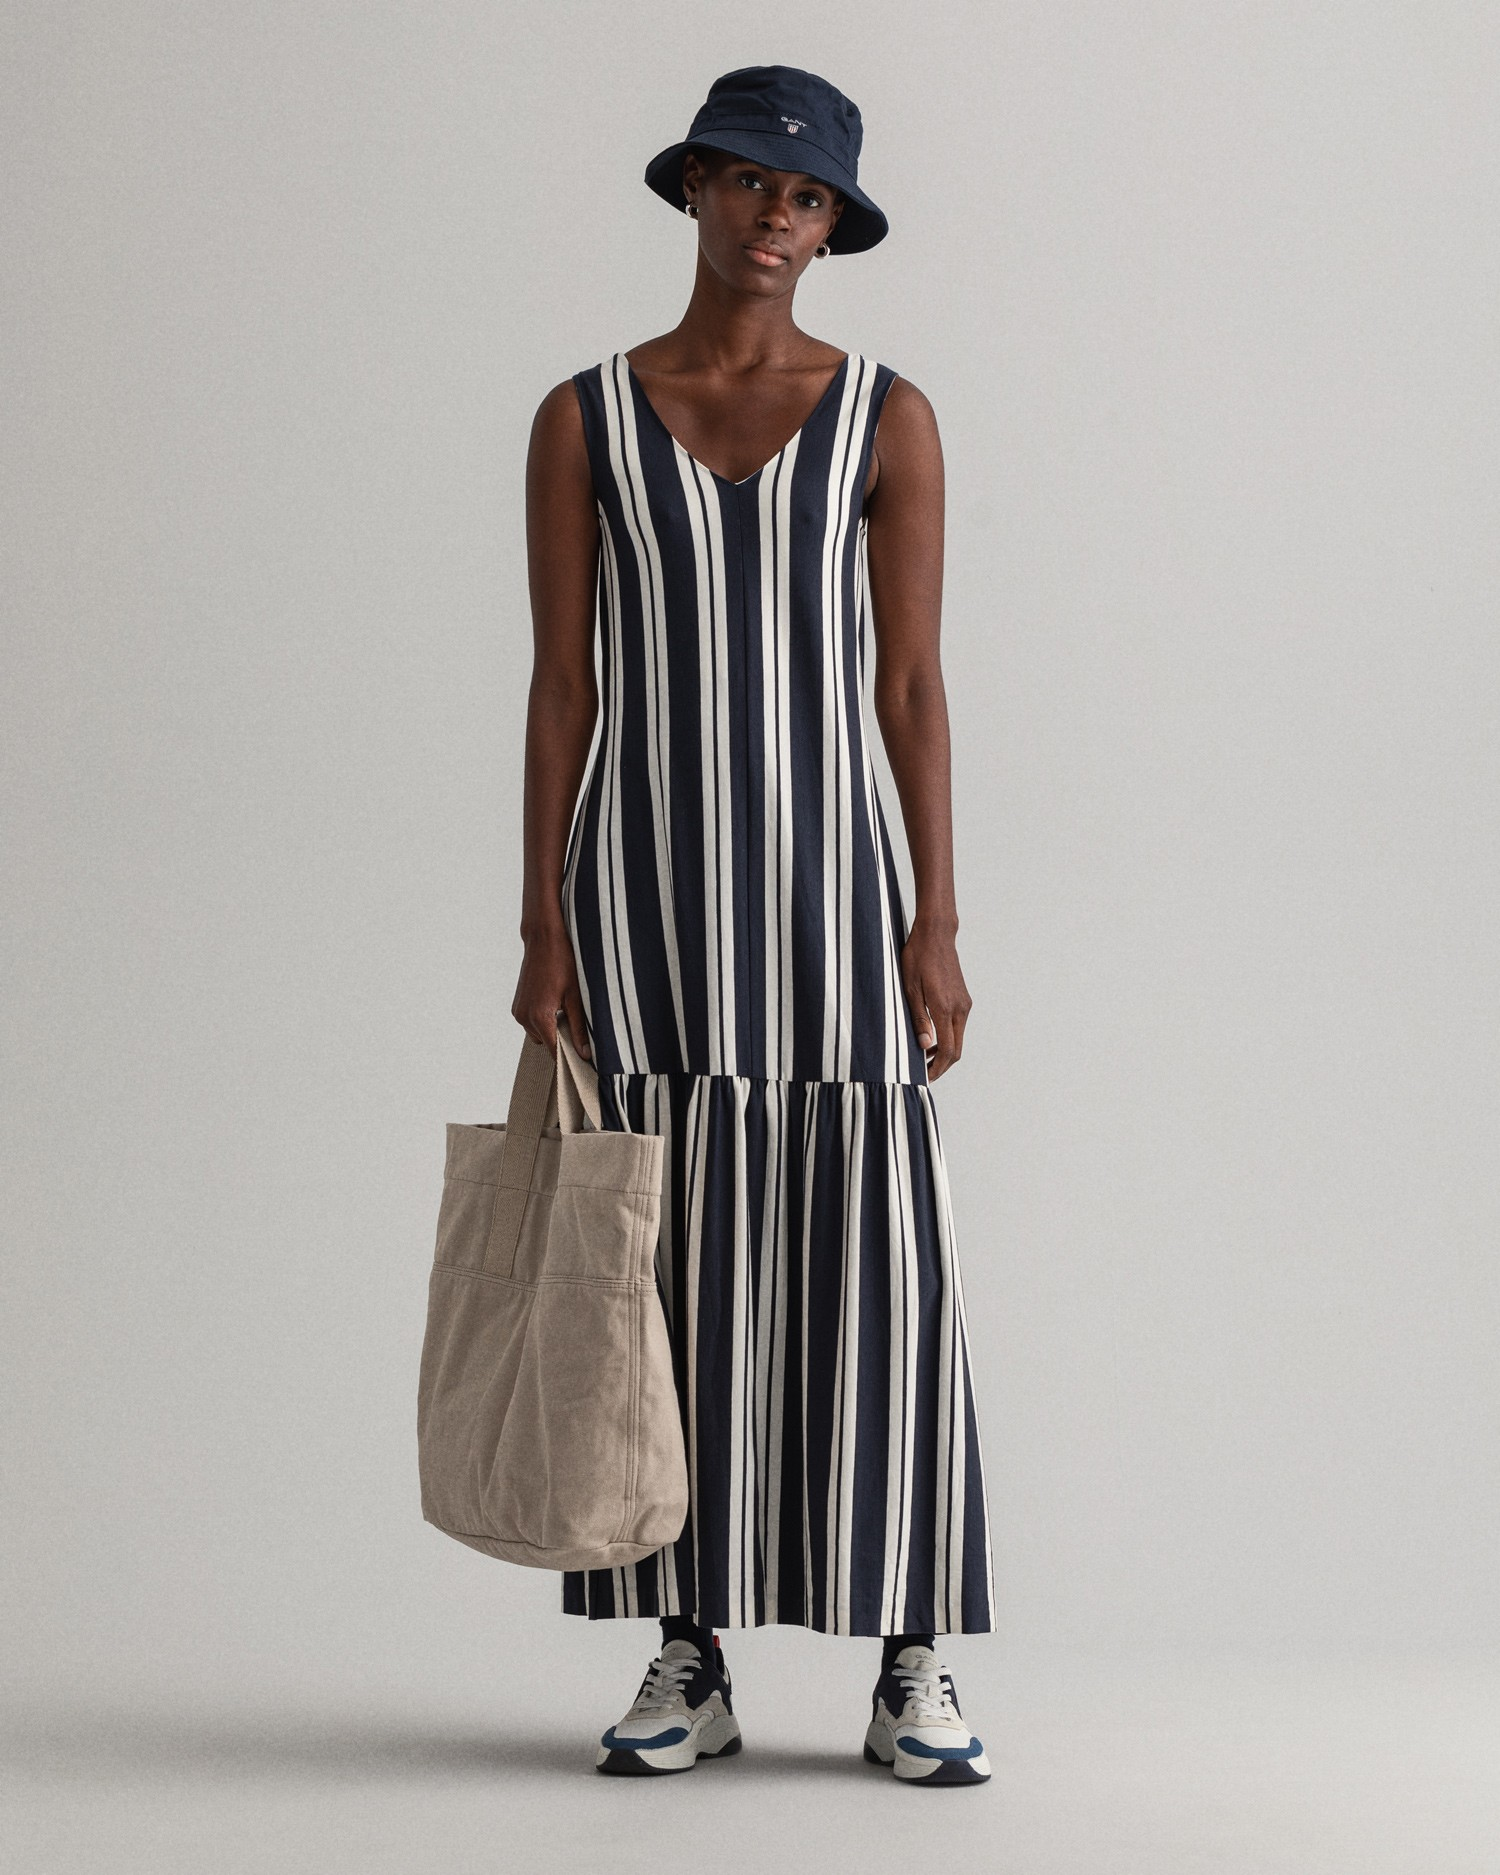 GANT Women's Striped Maxi Jersey Dress  - 4204363